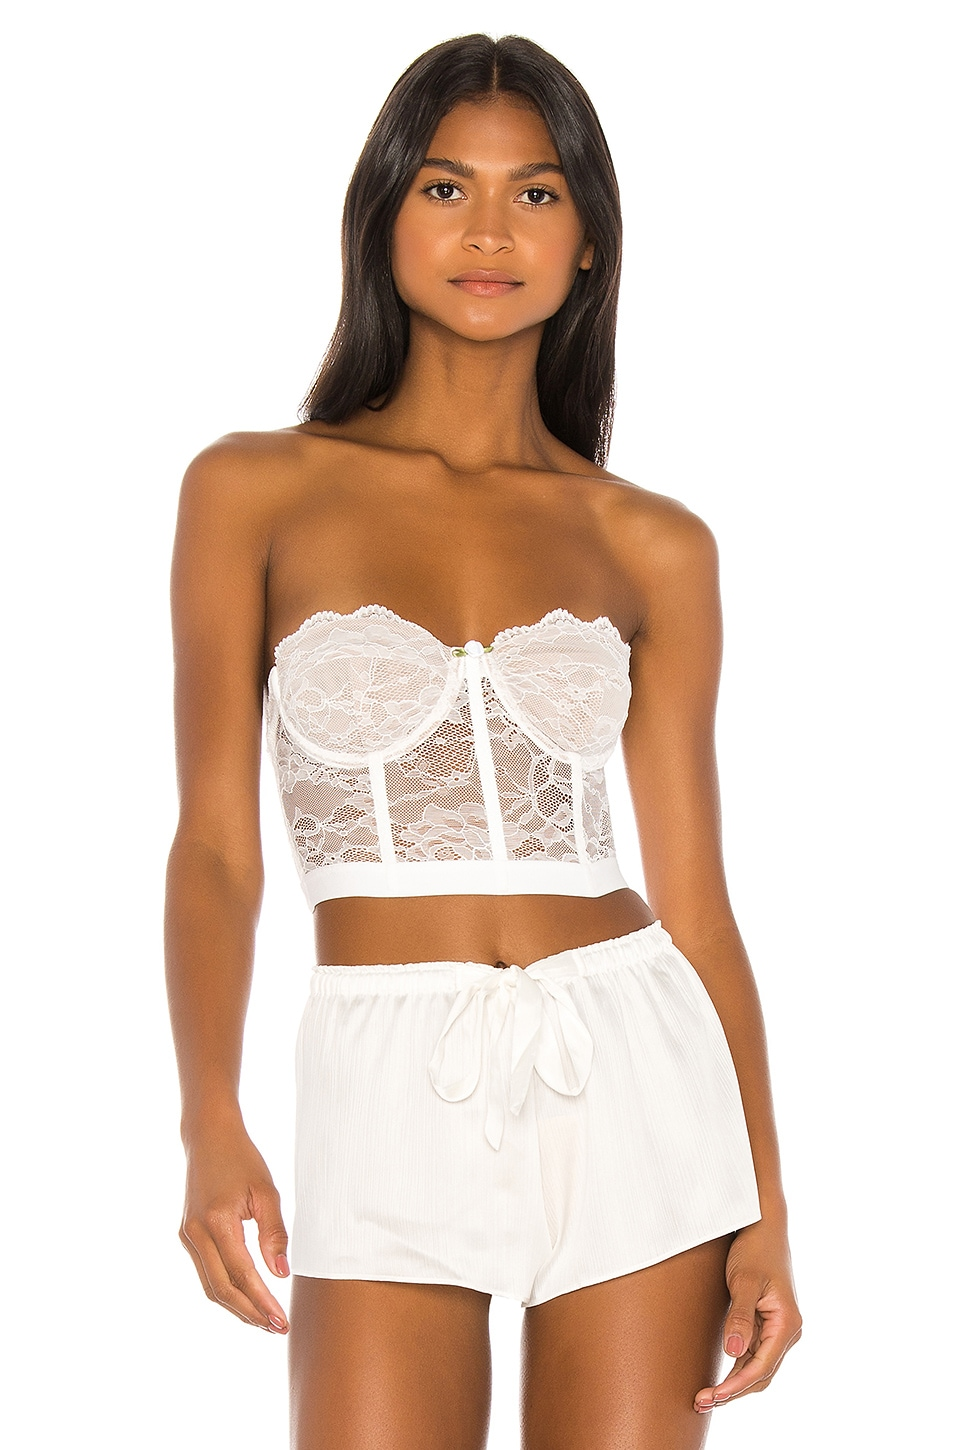 LPA Faira Bra in White